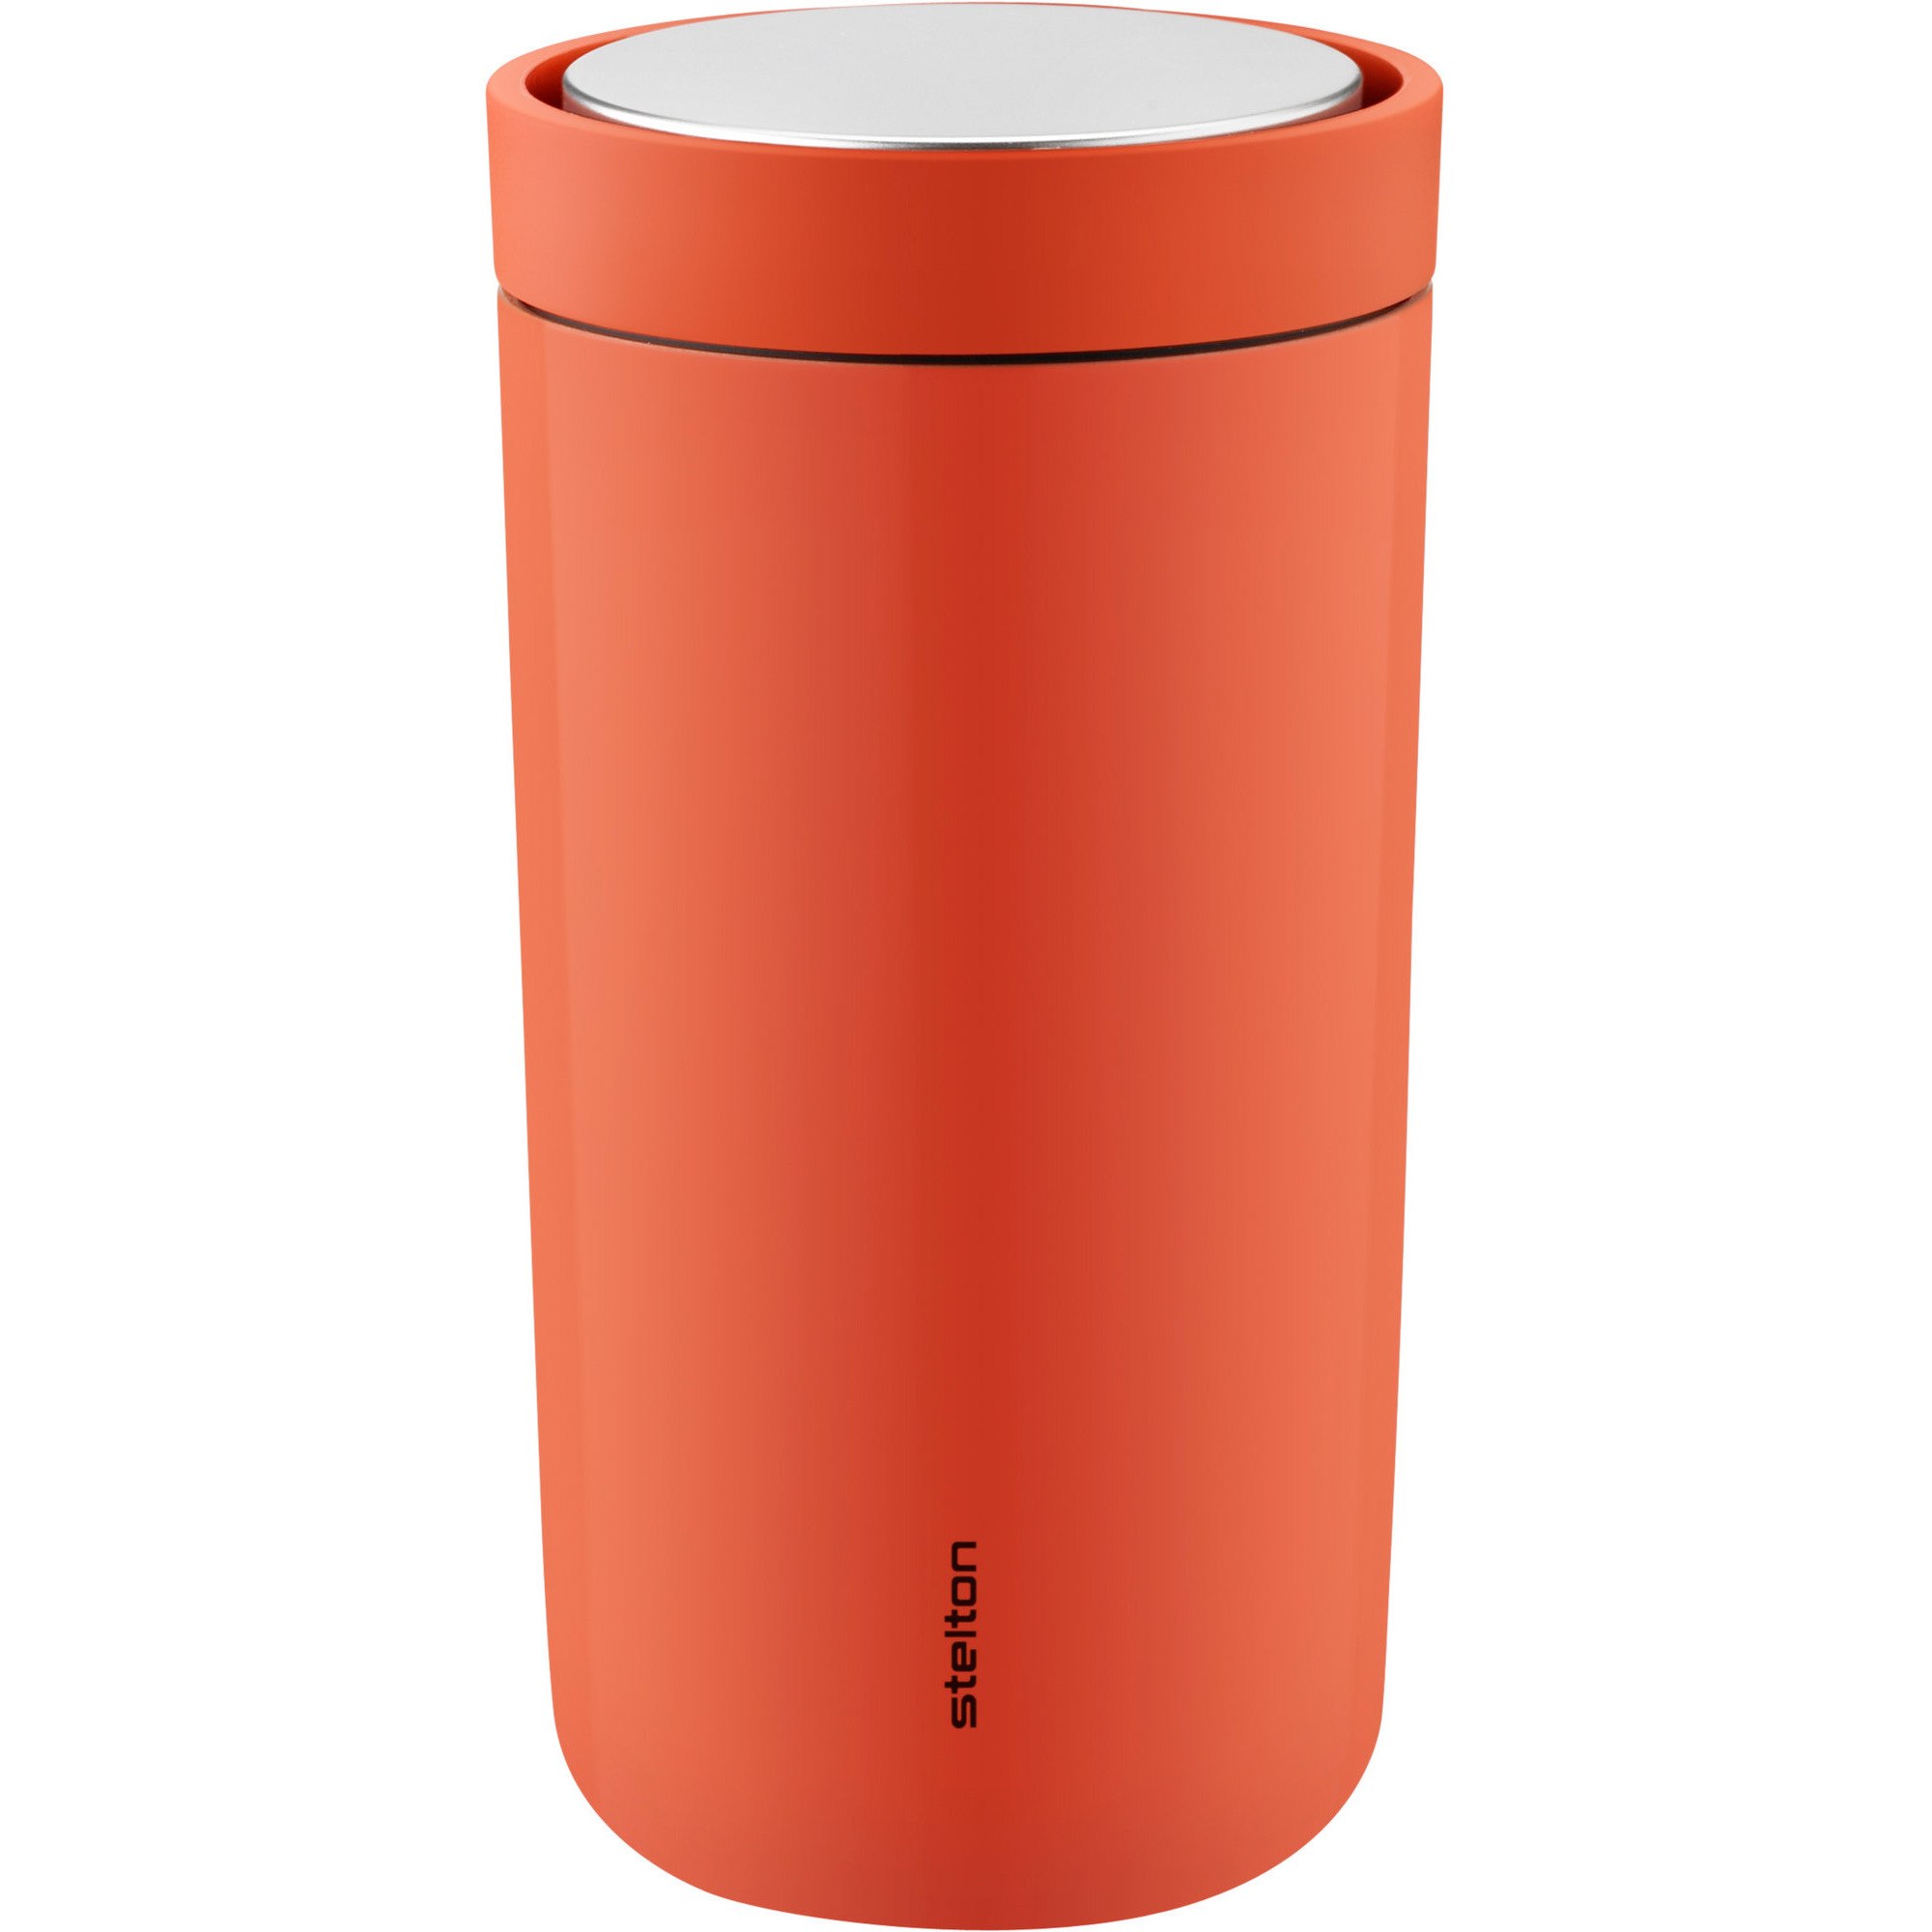 Stelton To Go Click 02 l. – soft rosehips